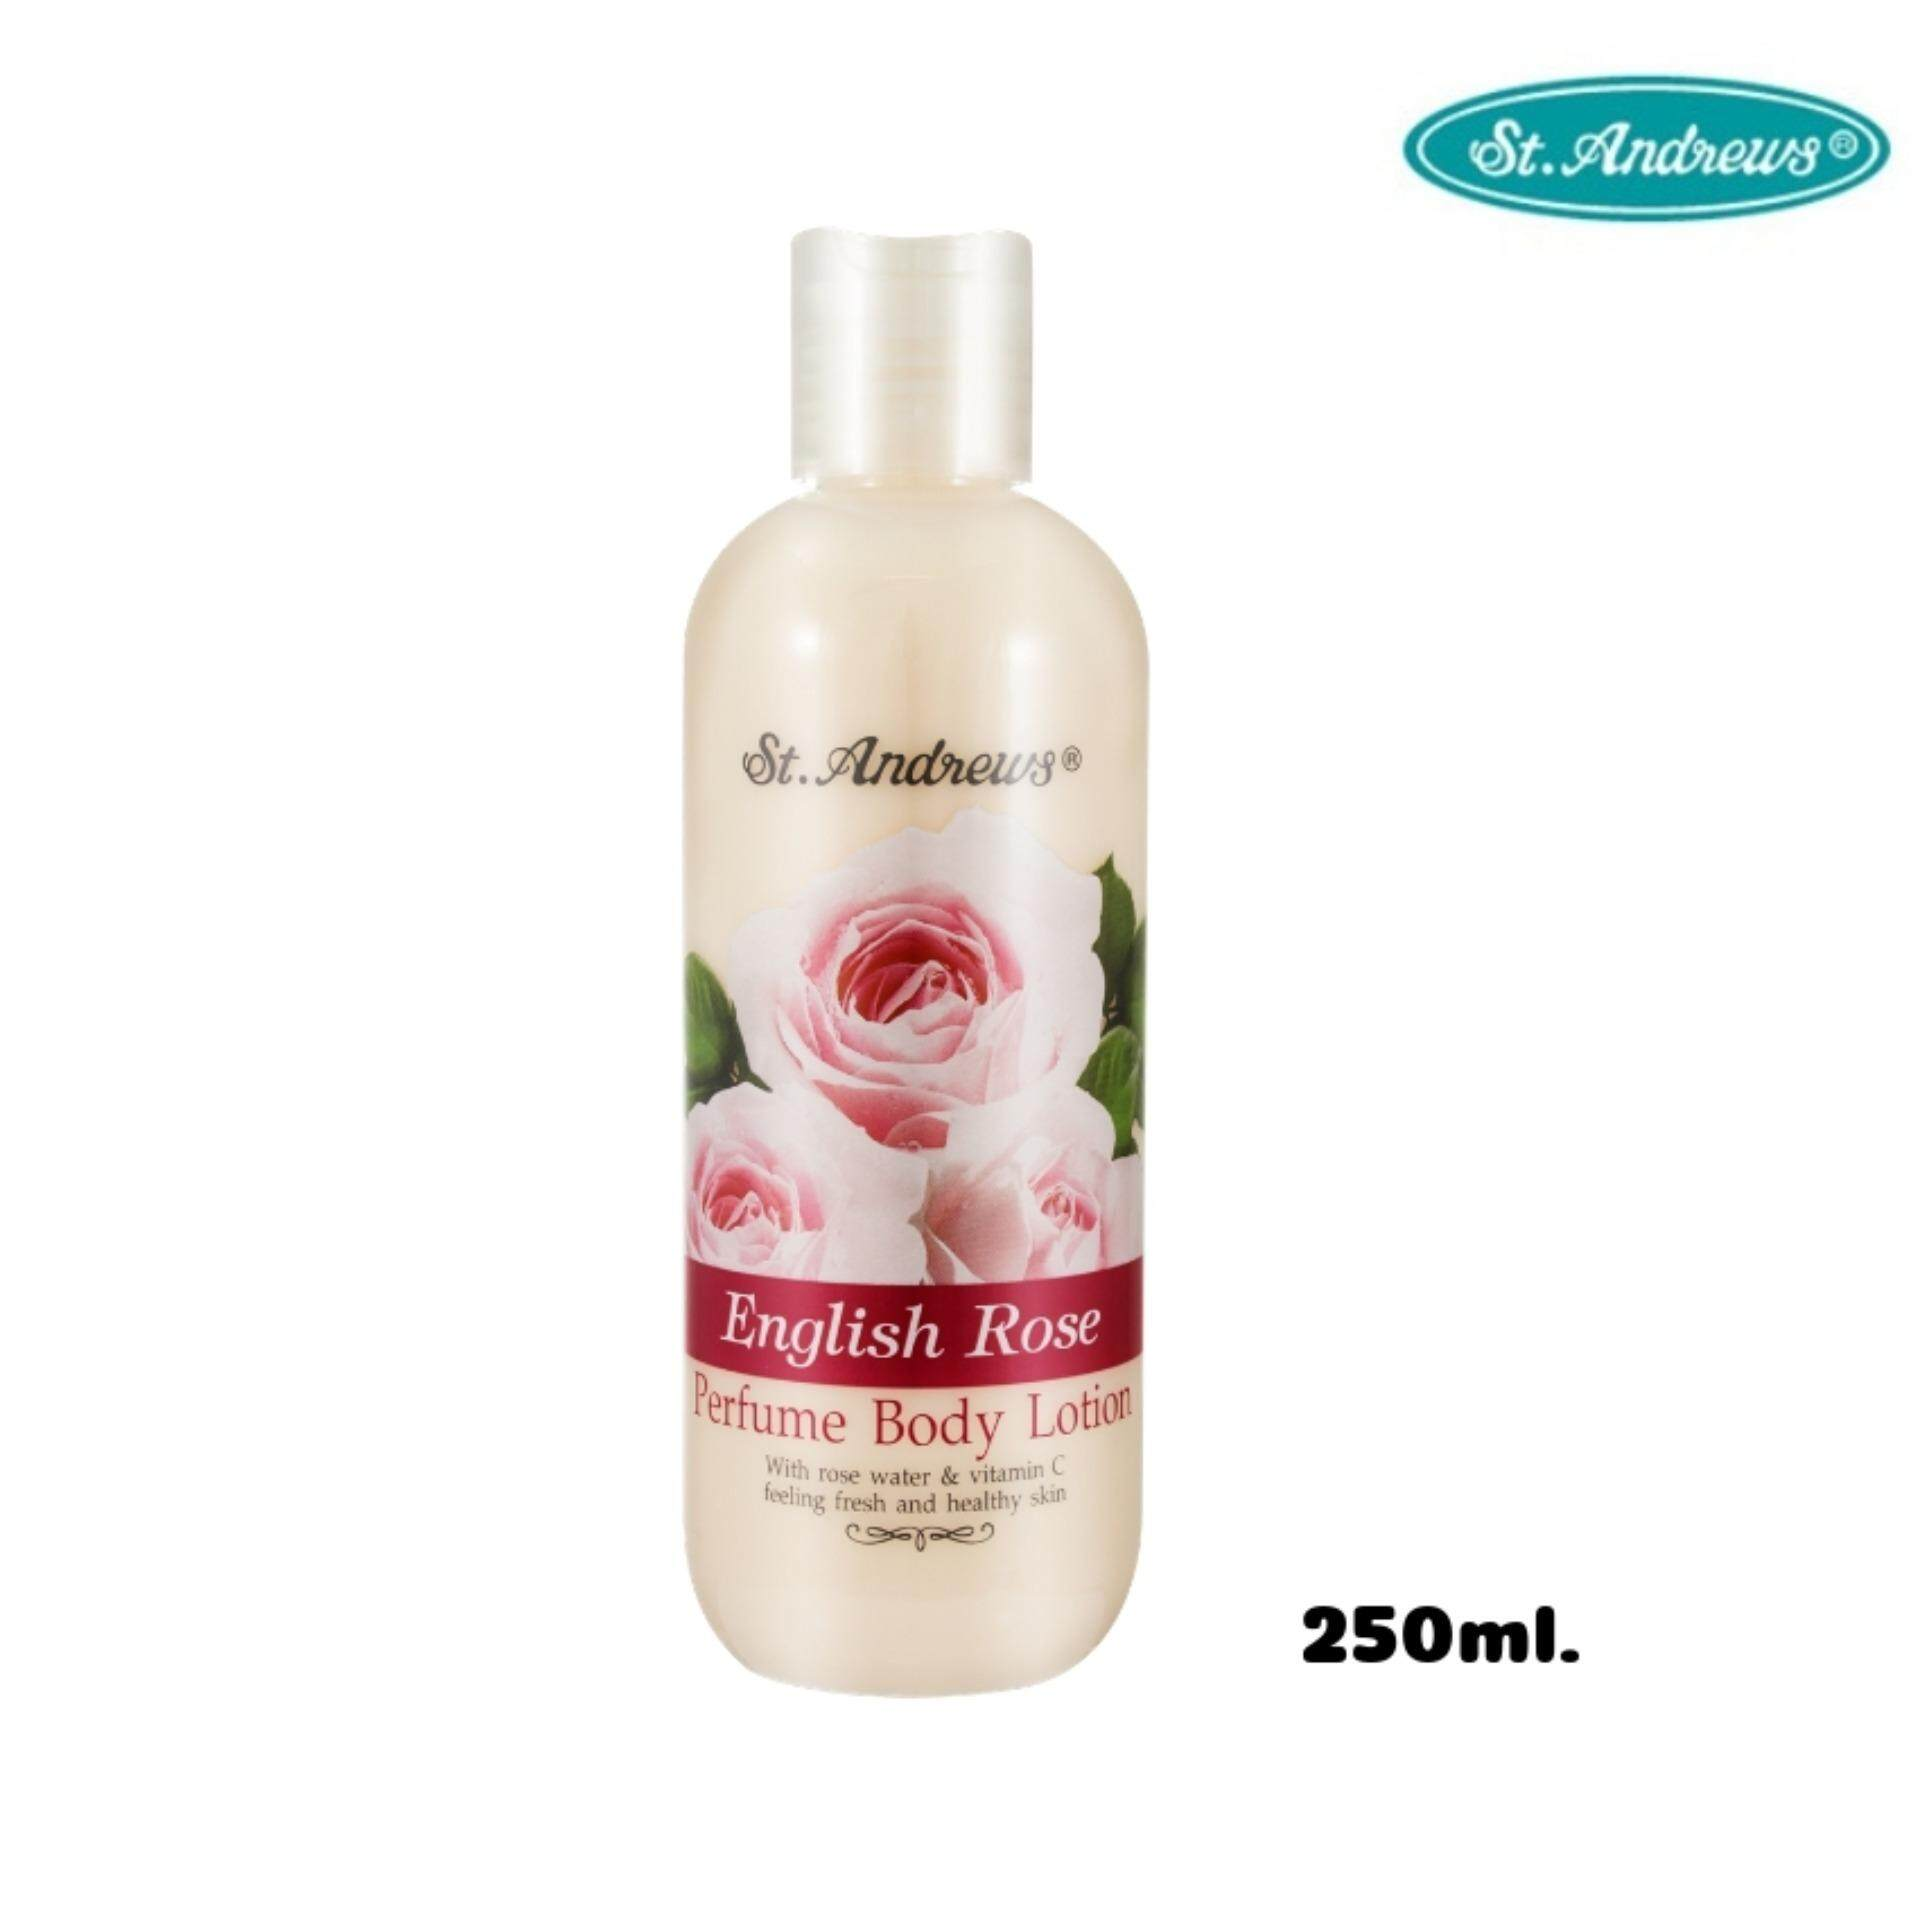 St.andrews Scent Of Floral Body Lotion โลชั่นน้ำหอม 250 Ml. By Bsc Official Store.